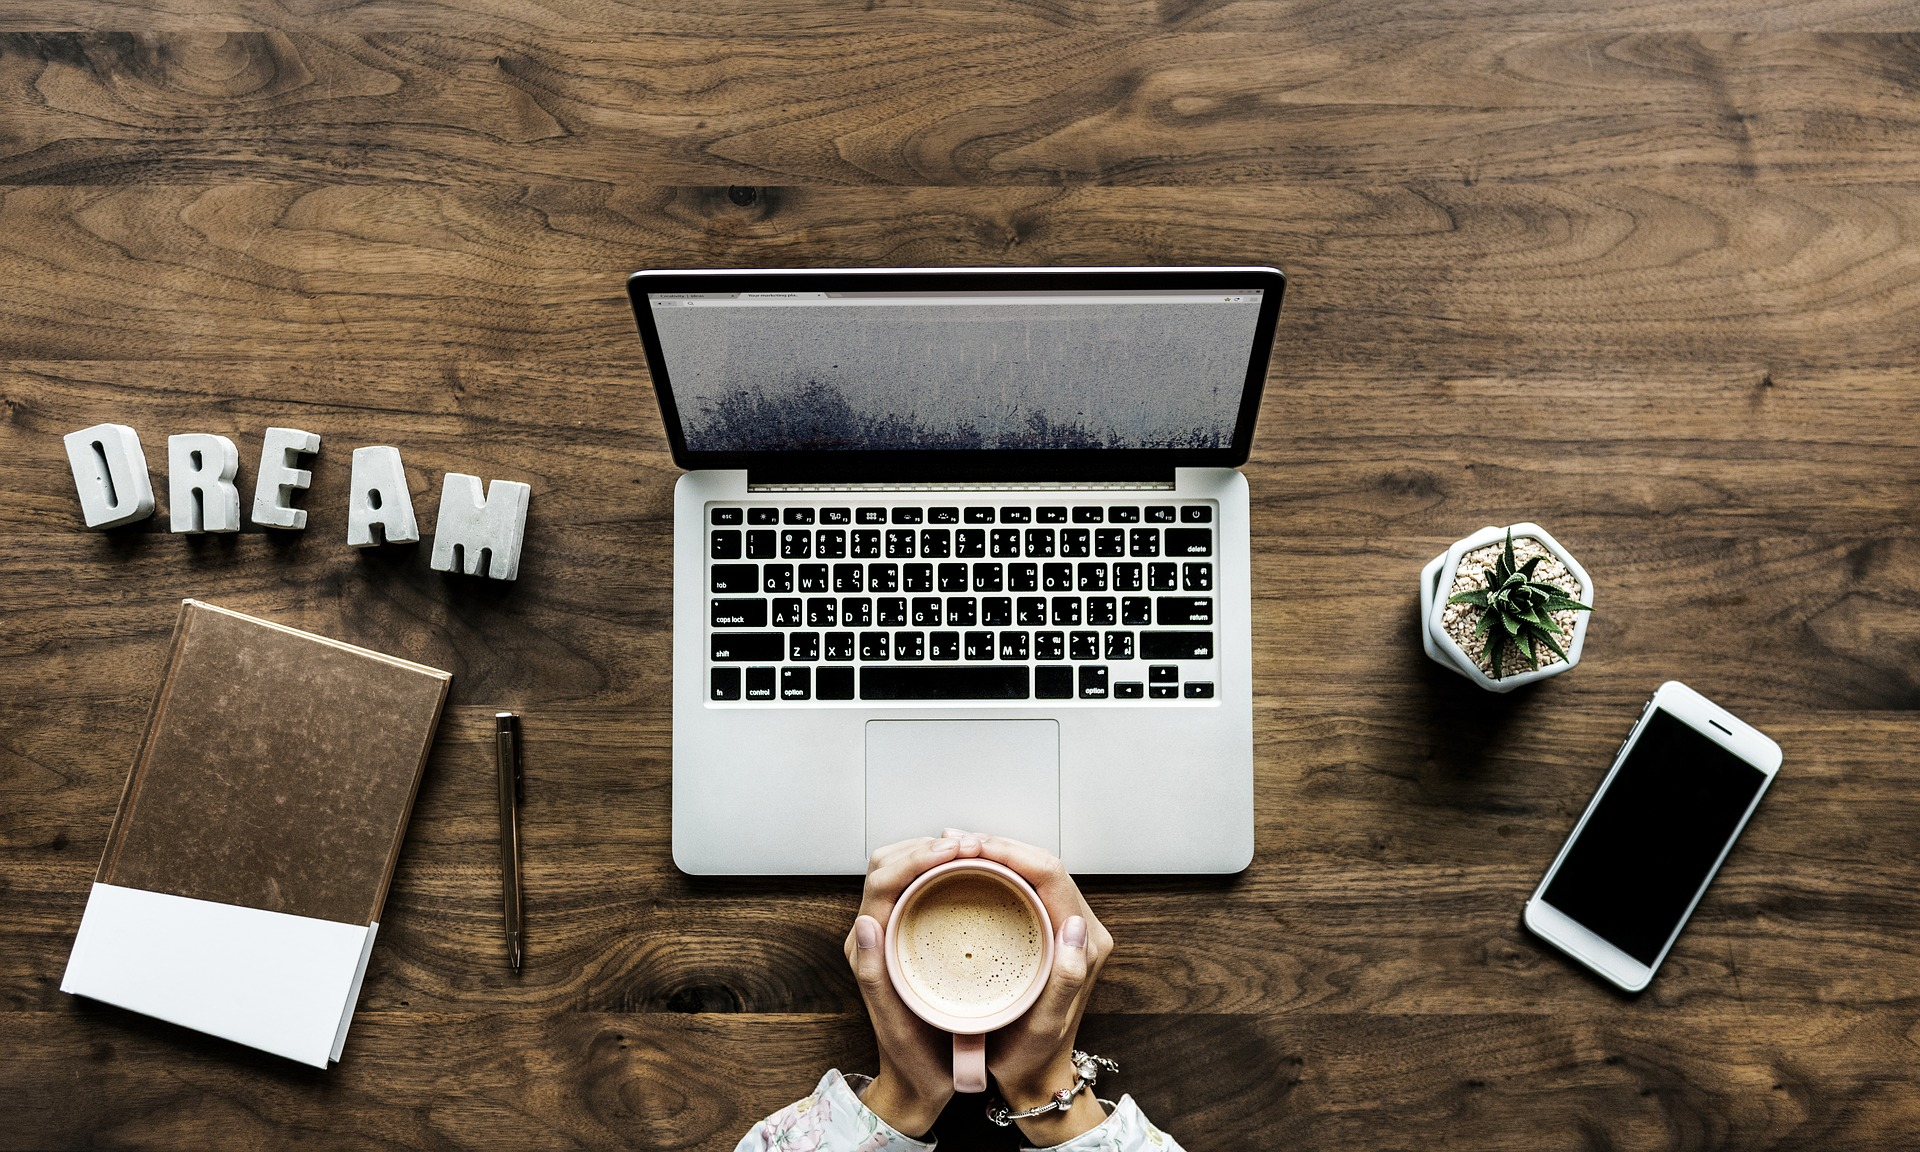 blogging, how to blog, start a blog, work from home, home jobs, at home work, how to work from home, transcription, work in pajamas, extra income, part time income, part time from home